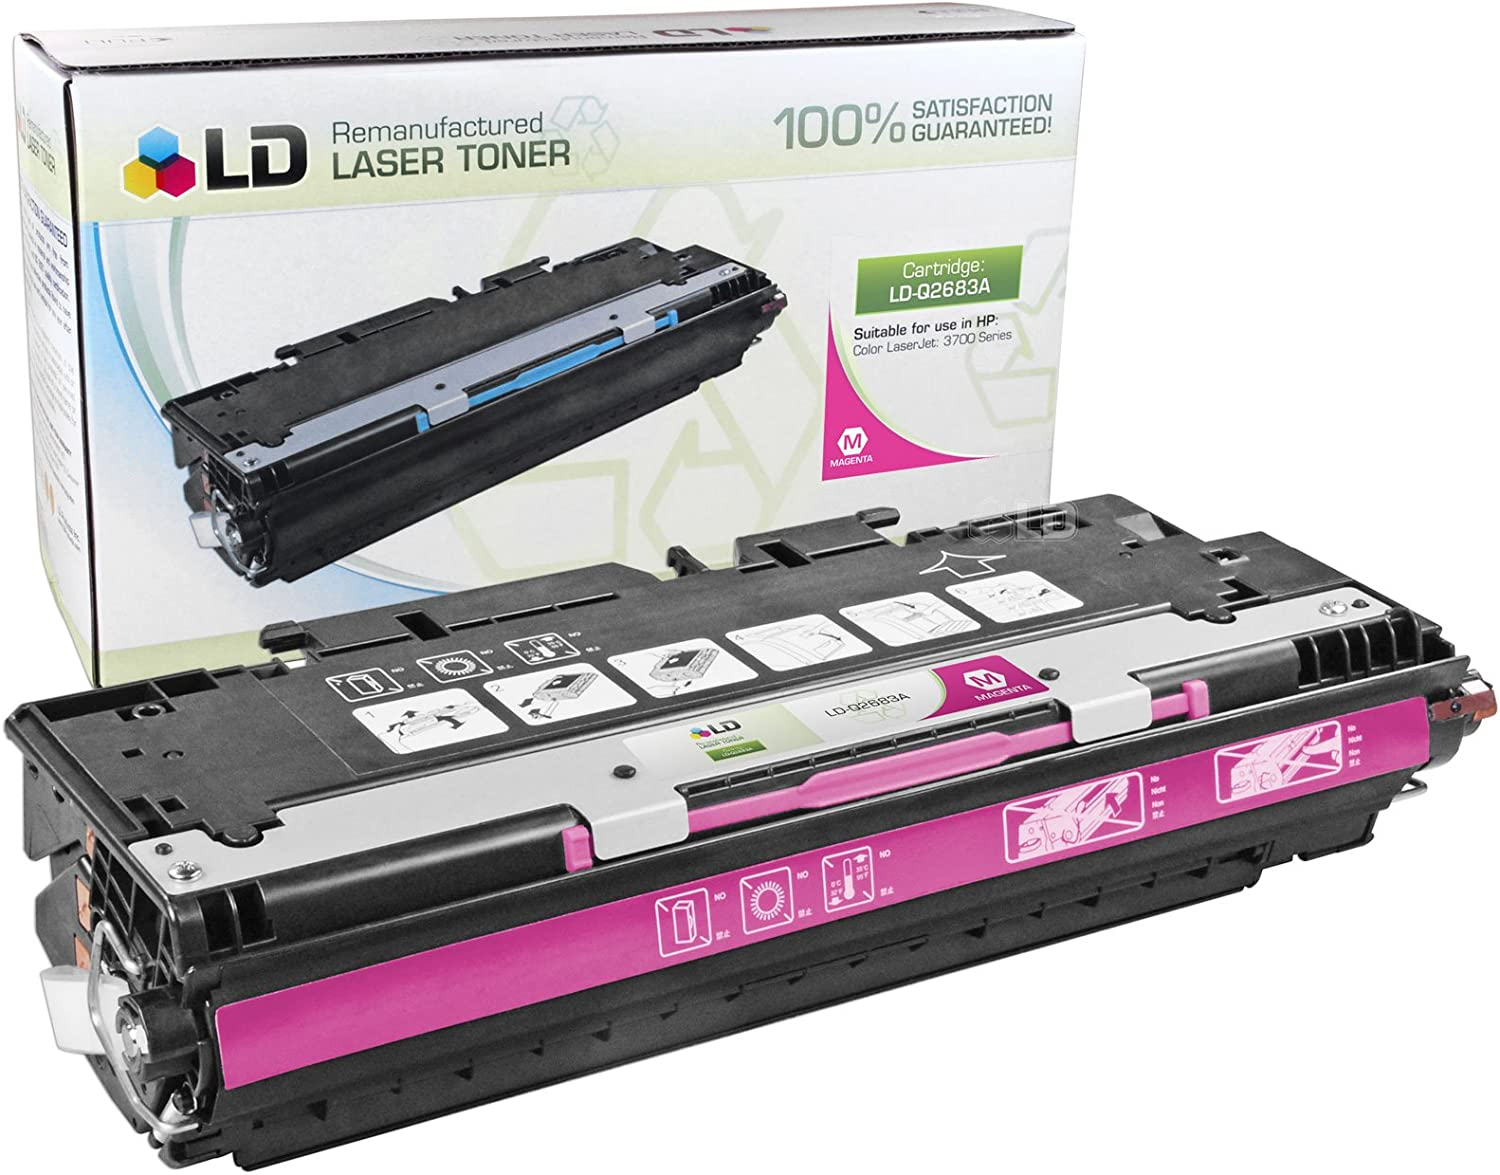 LD Remanufactured Toner Cartridge Replacement for HP 311A Q2683A (Magenta)